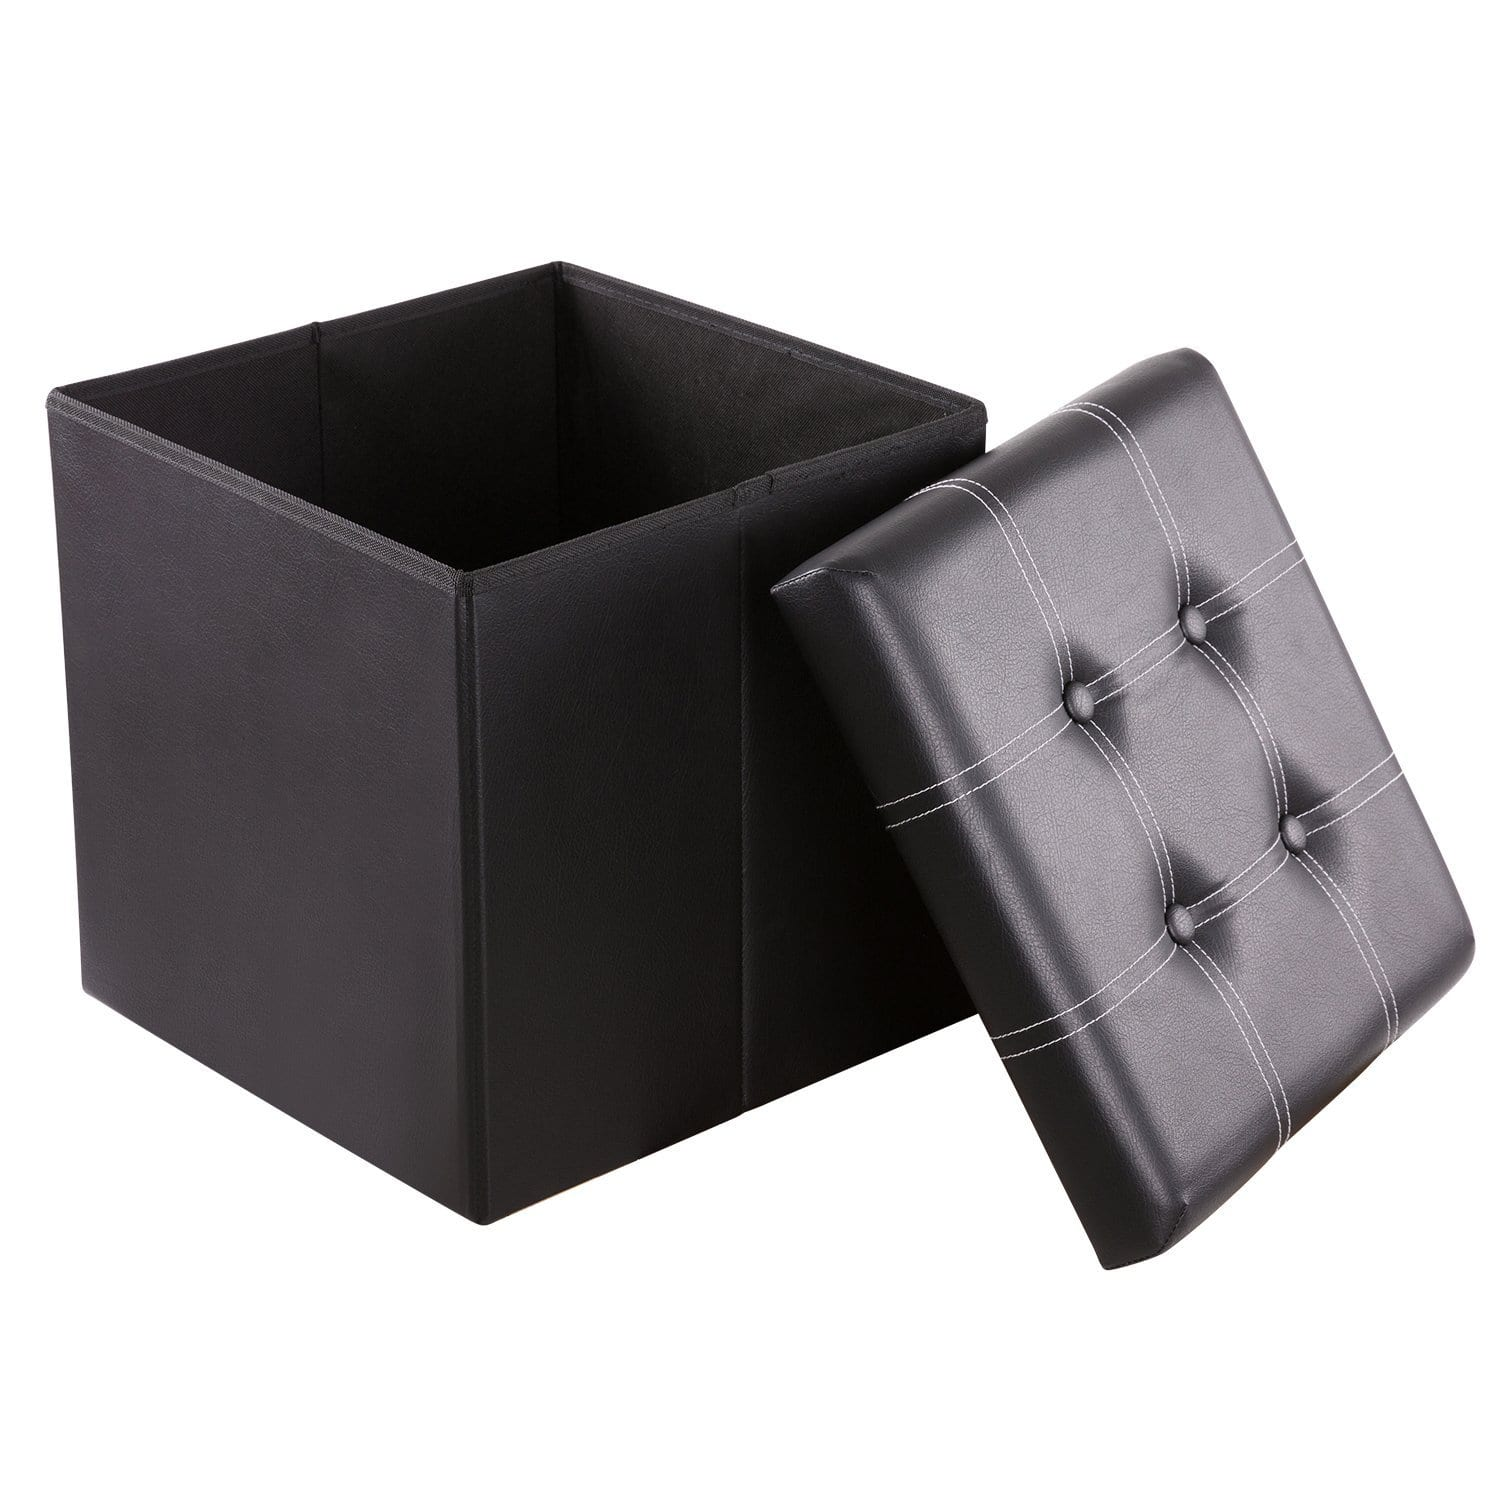 50% off Cyber Monday Sale Fold-able HollyHOME Storage Ottoman, only $9.99 AC from Amazon